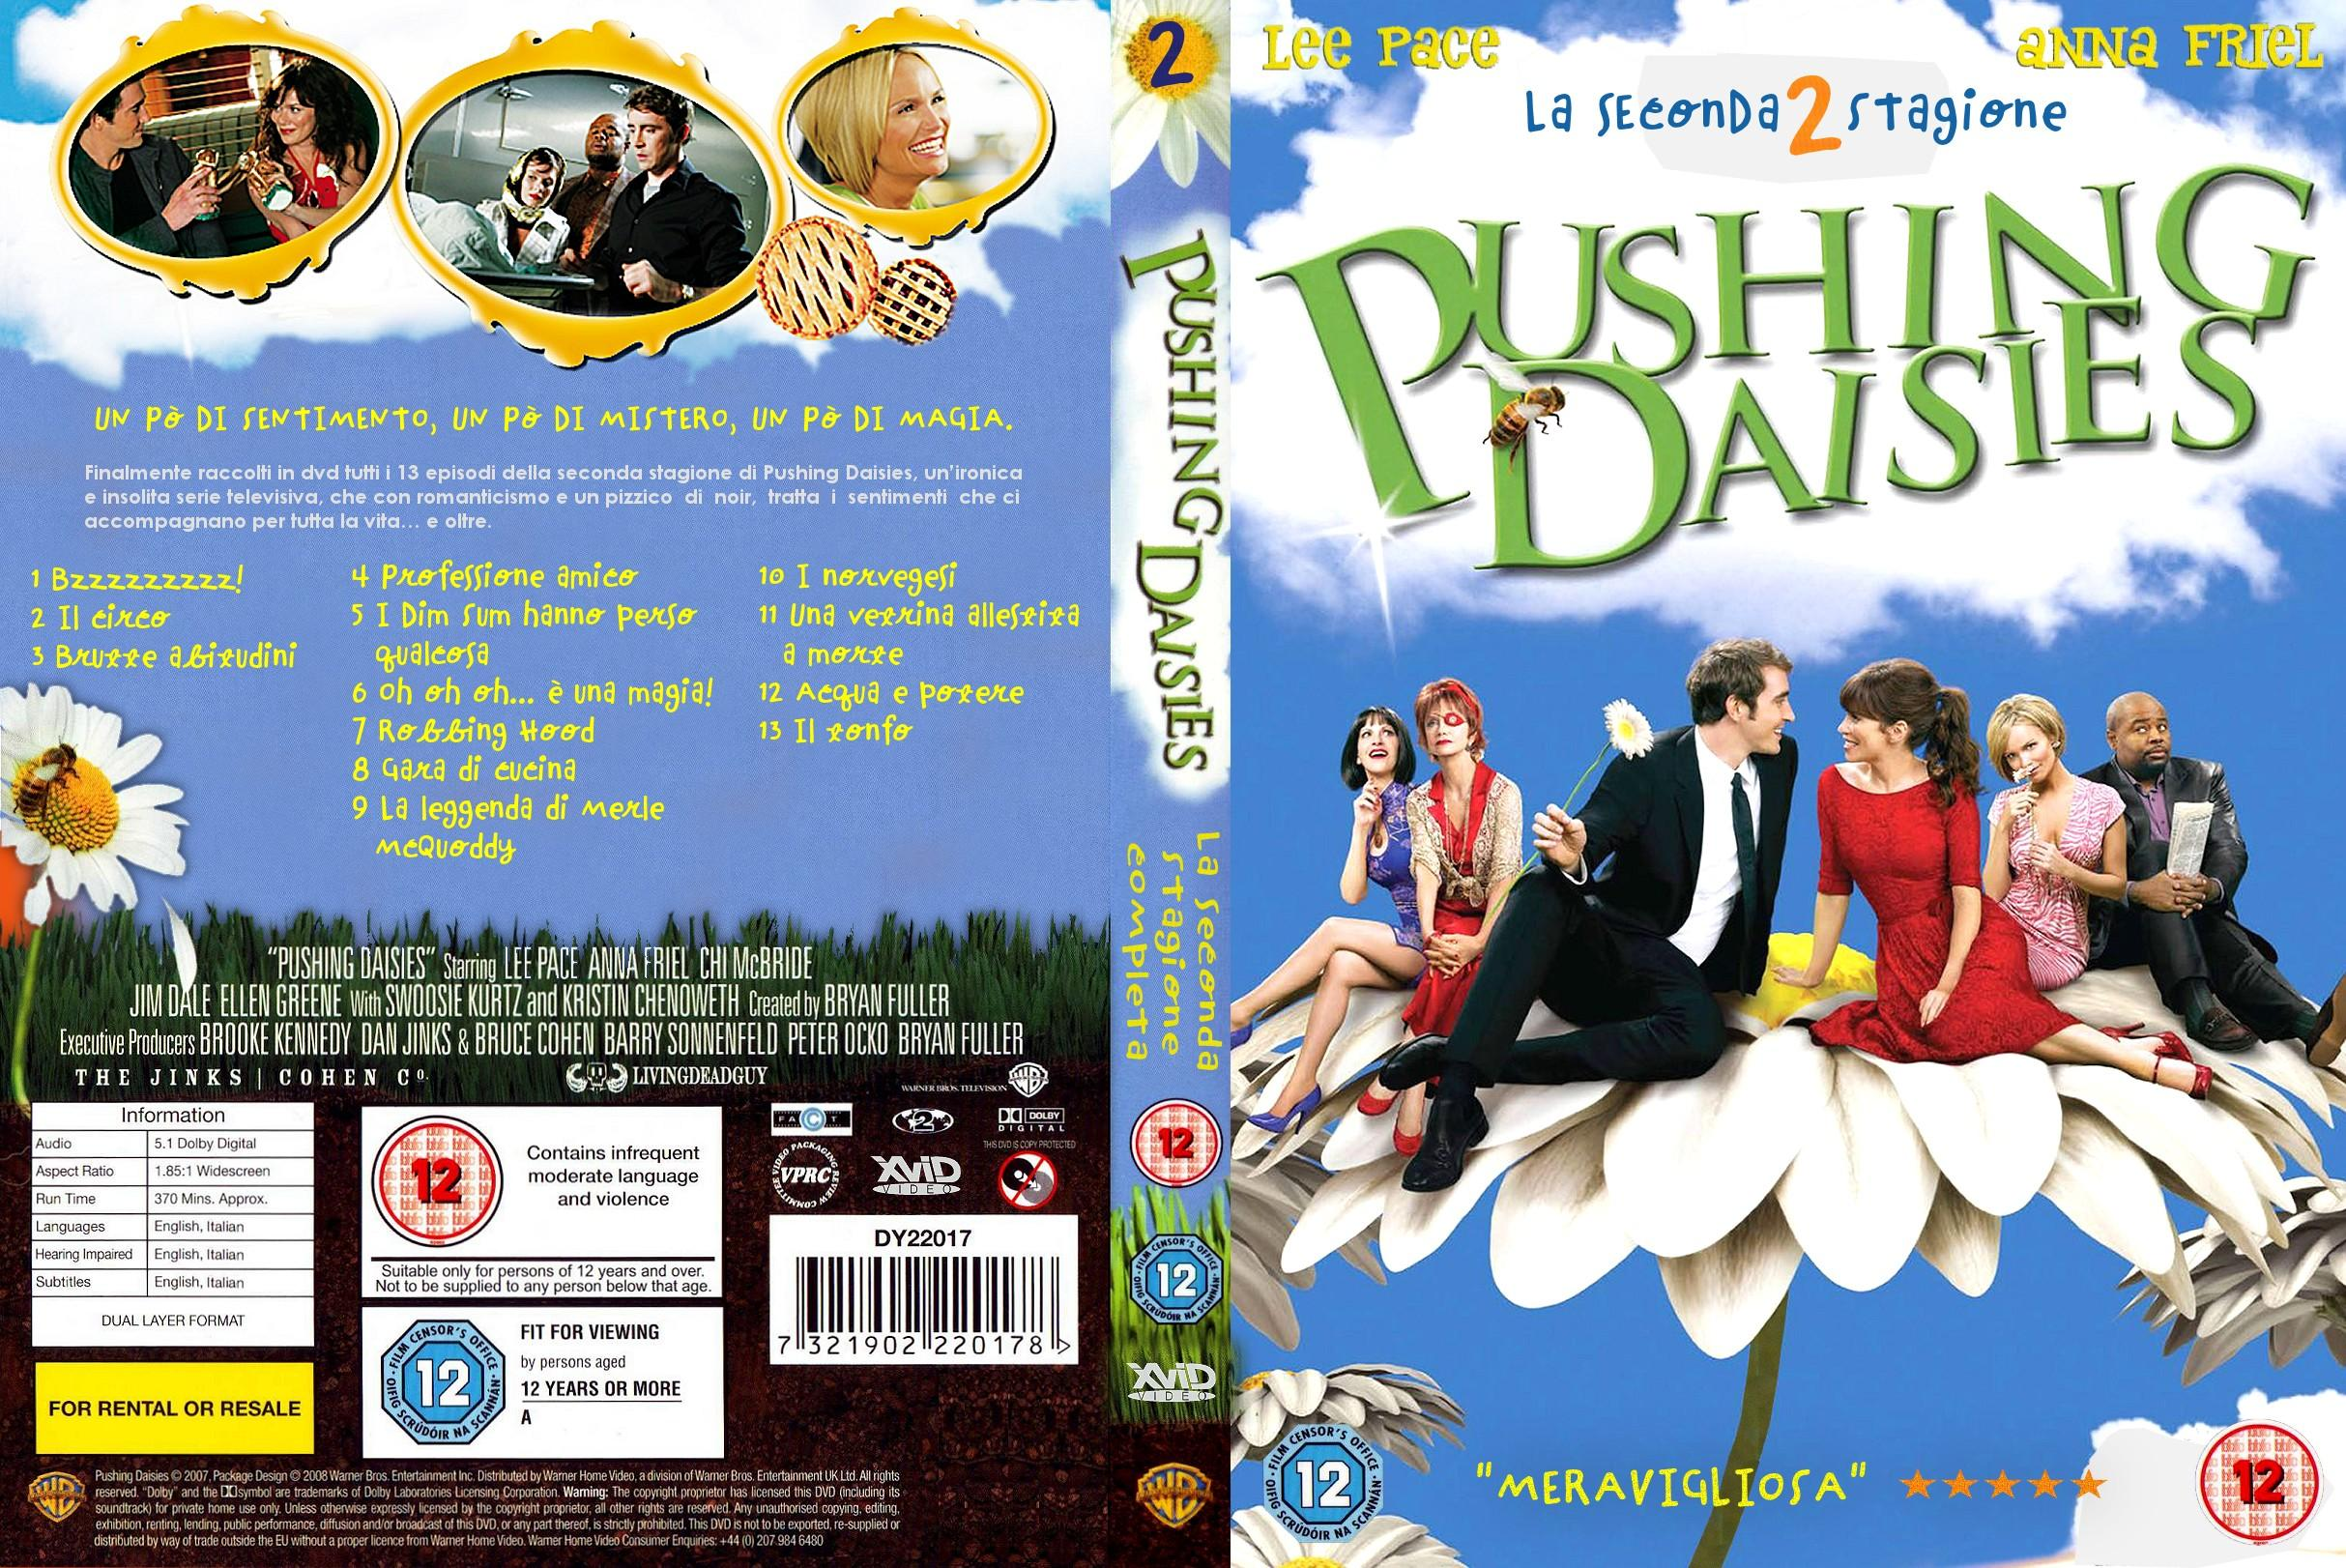 Pushing daisies season 1 (v1).